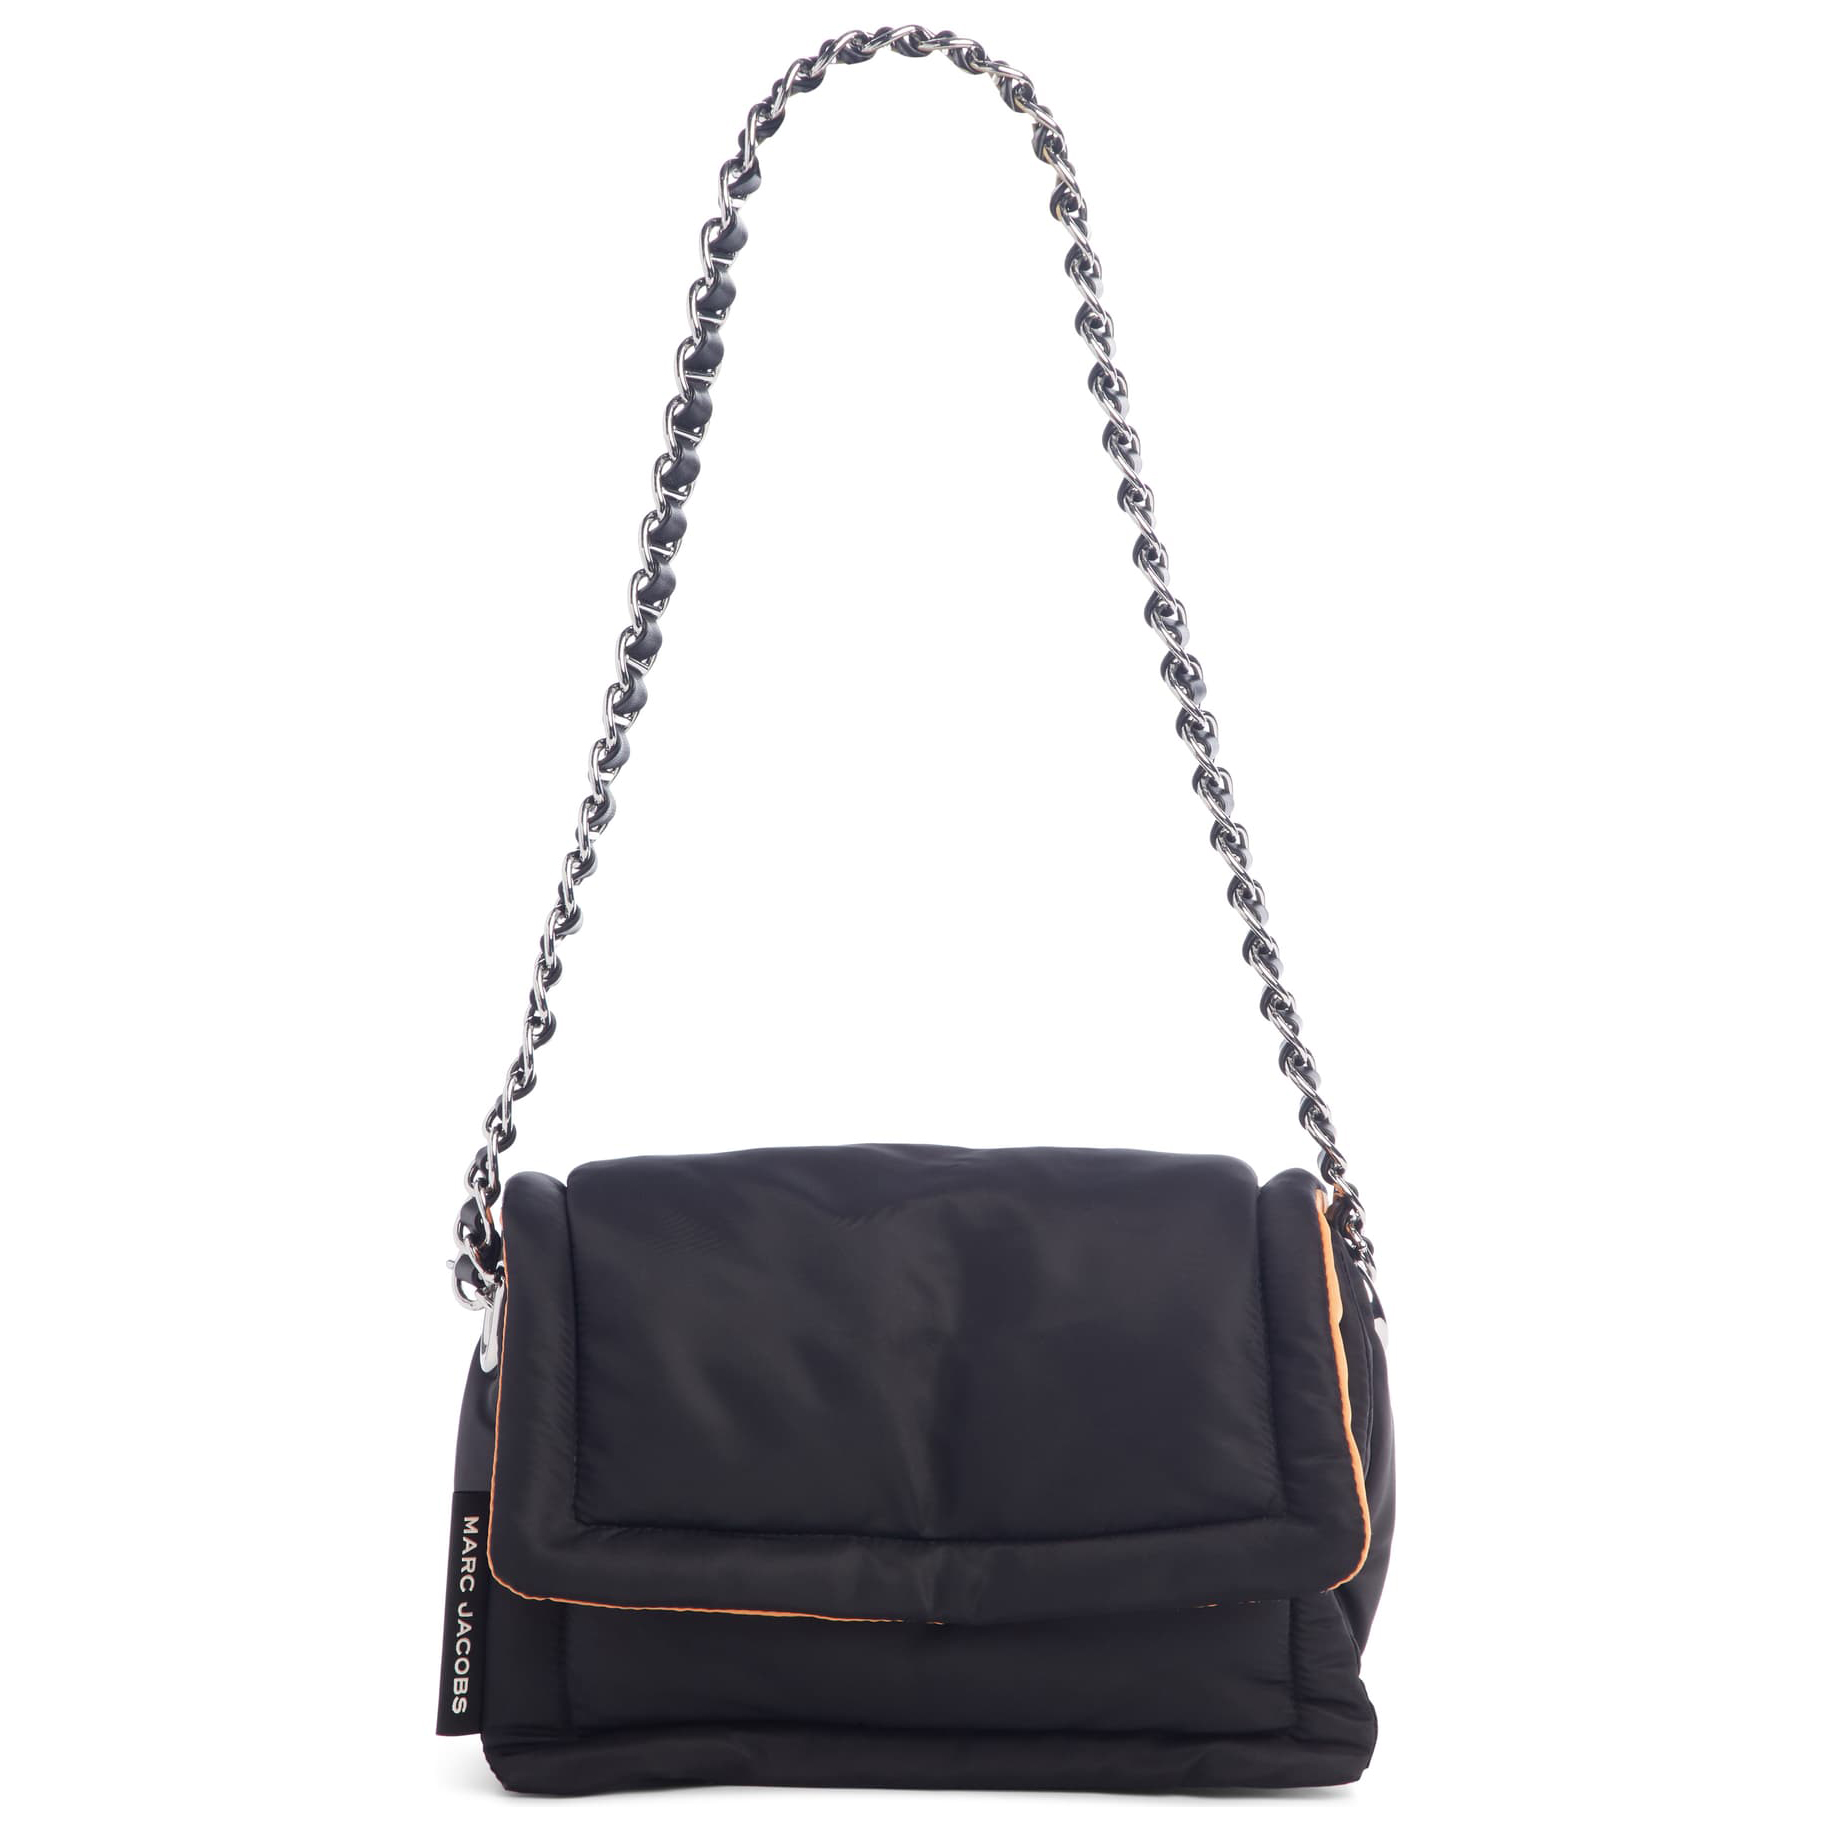 MARC JACOBS The Nylon Pillow Shoulder Bag